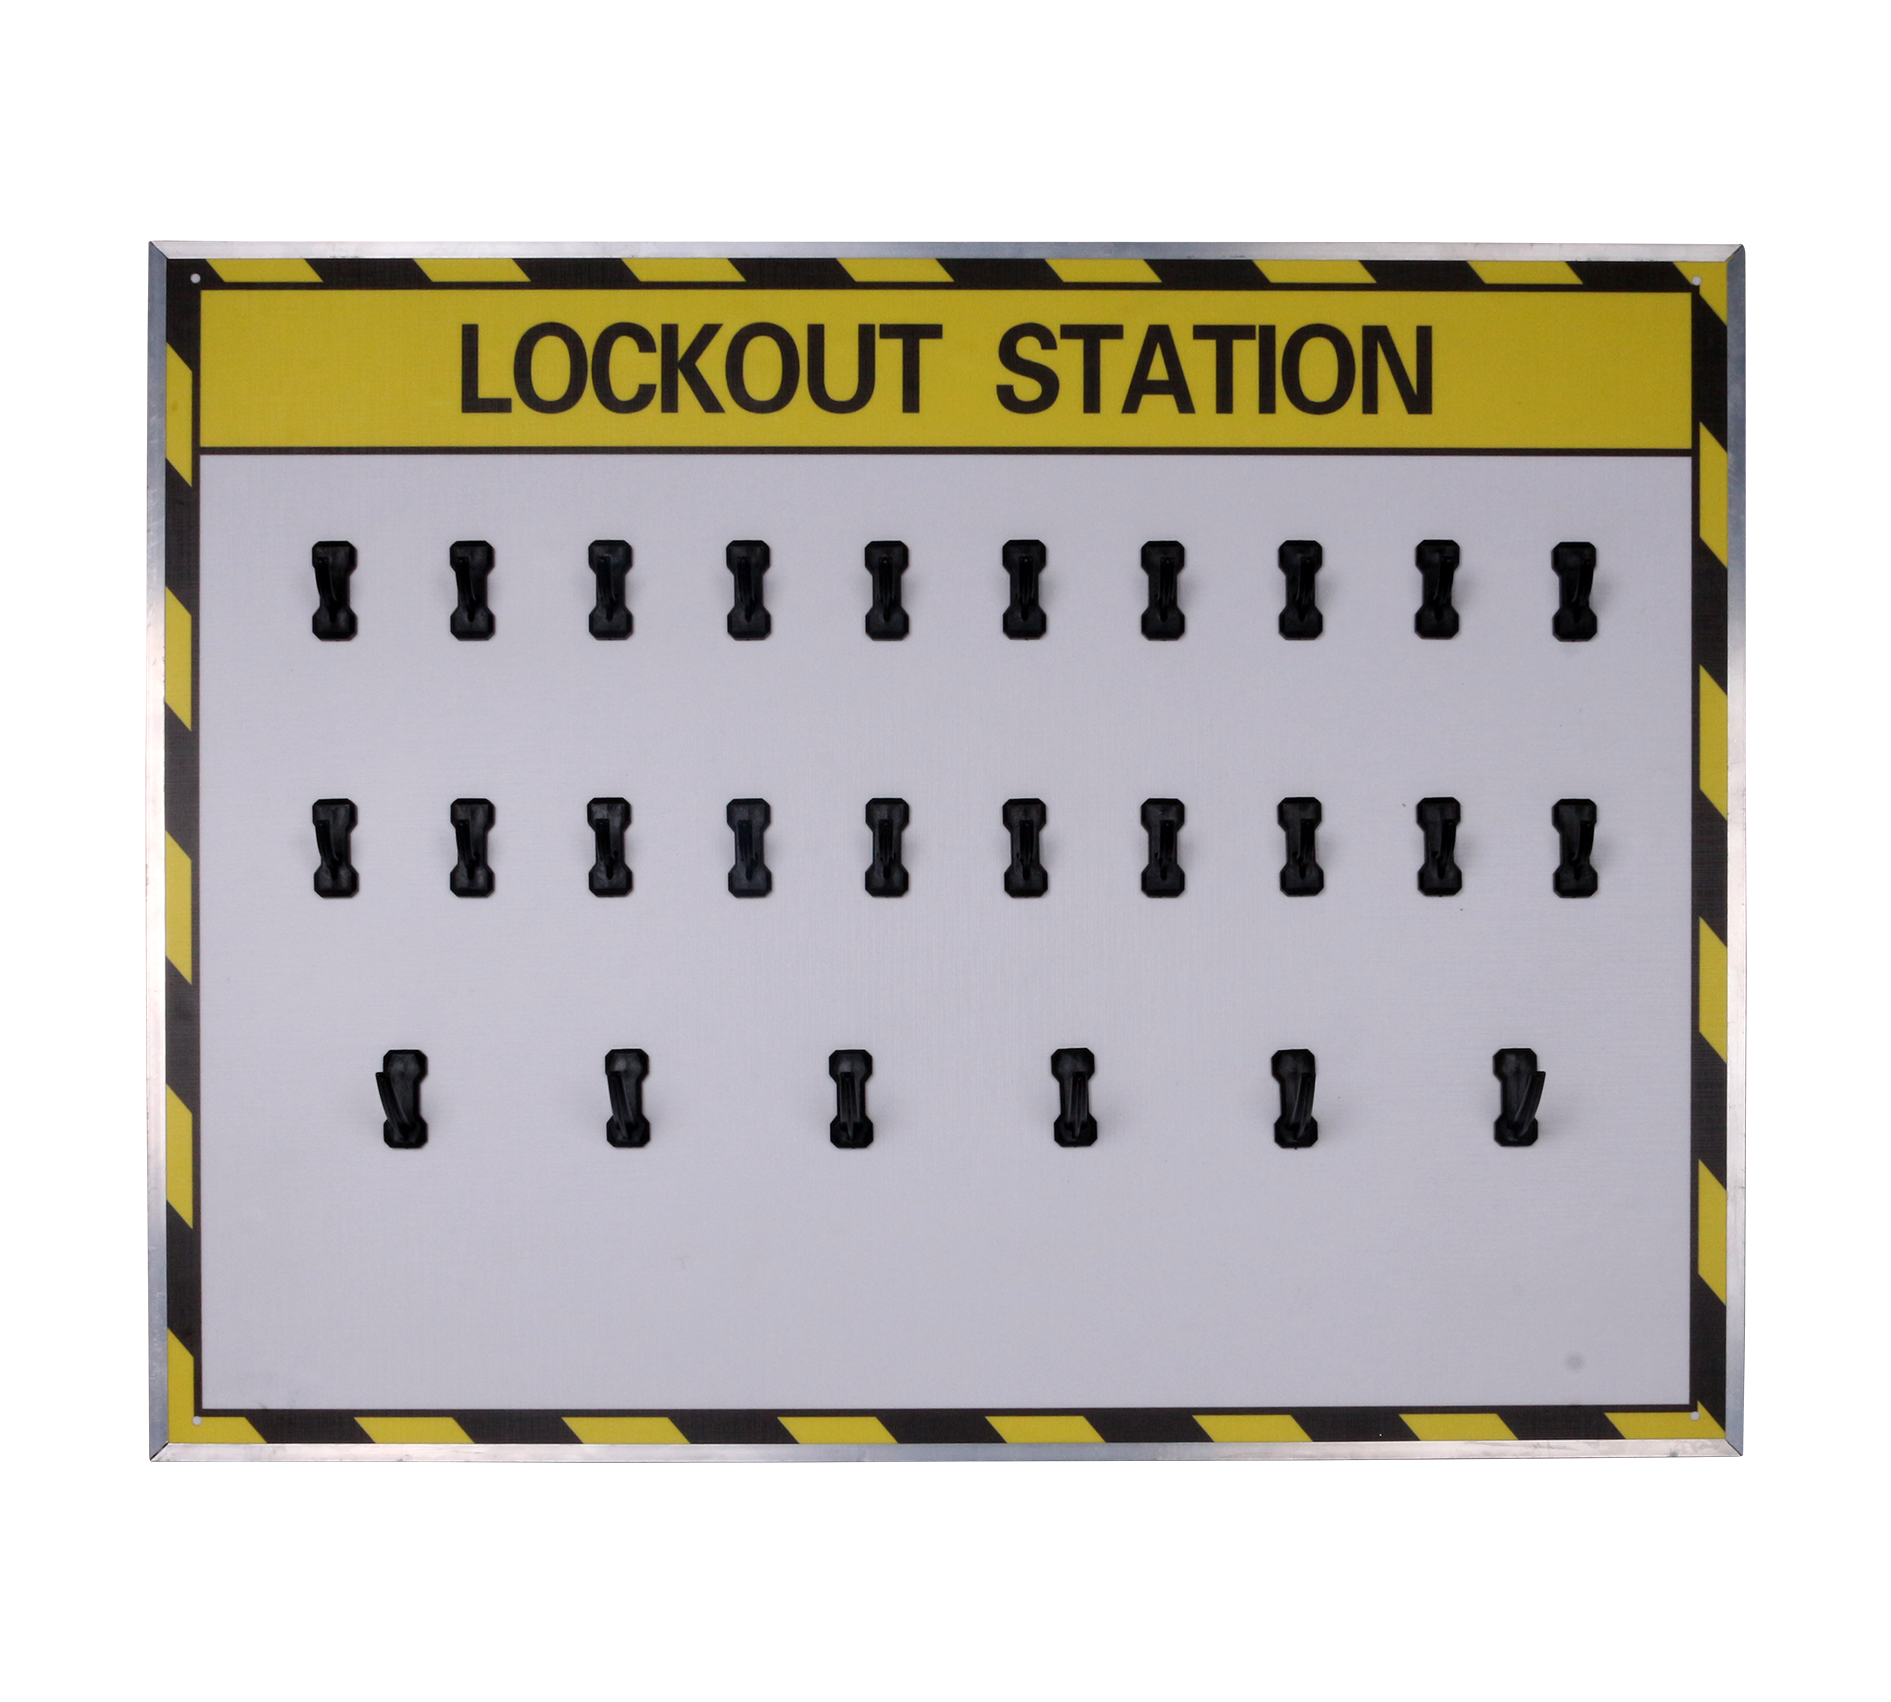 20 lock lockout station only (With images) Lockout